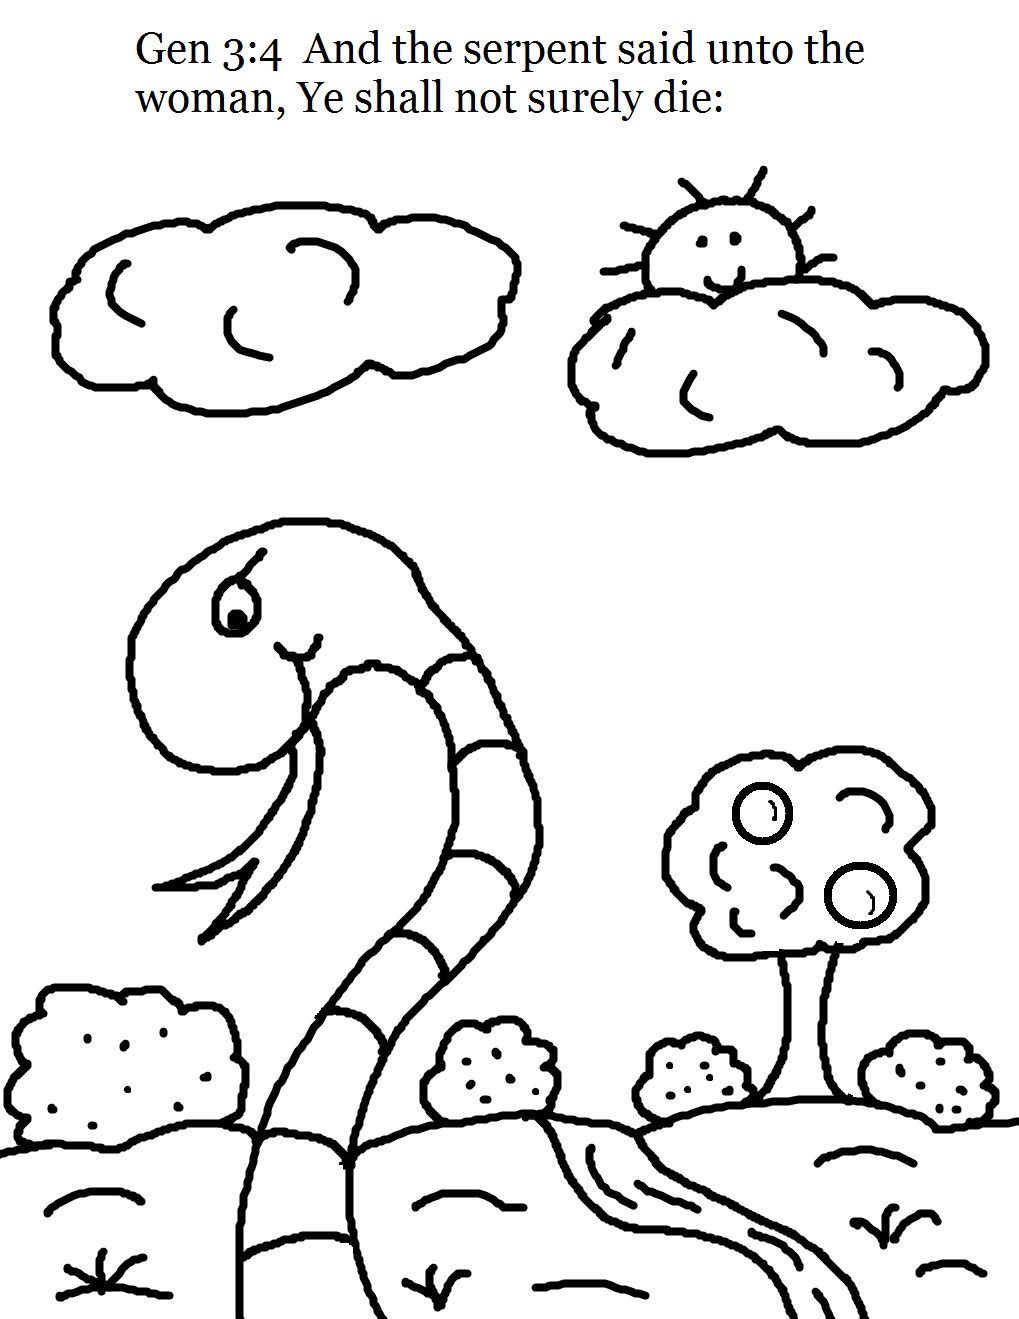 Coloring Pages For Children Is A Wonderful Activity That Encourages To Think In Creative Adam And EveColoring PagesBible